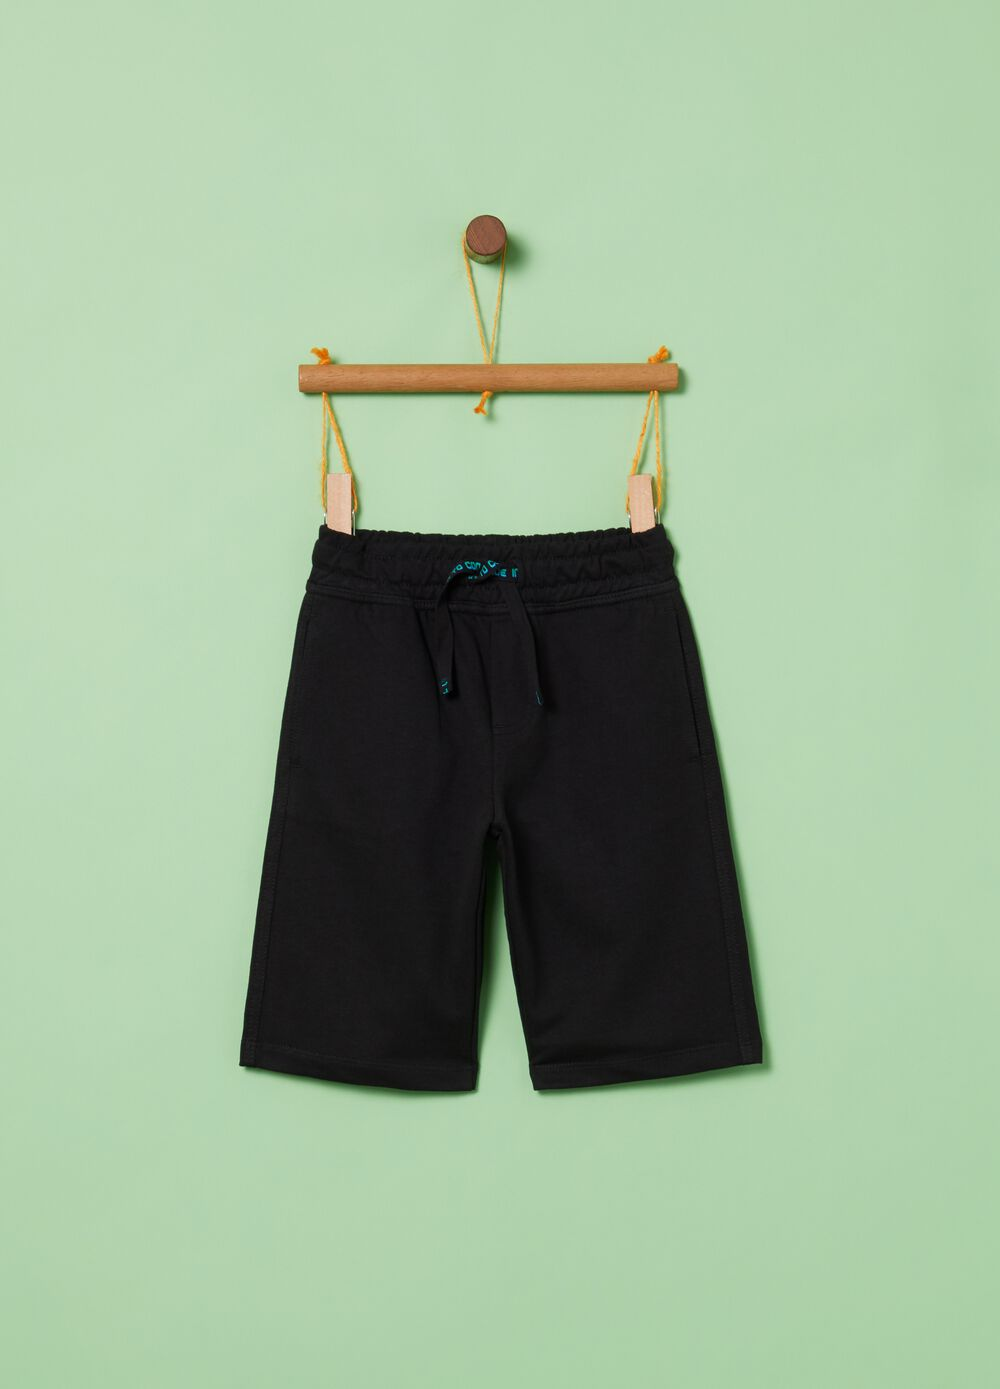 Terry towelling shorts with pockets and drawstring